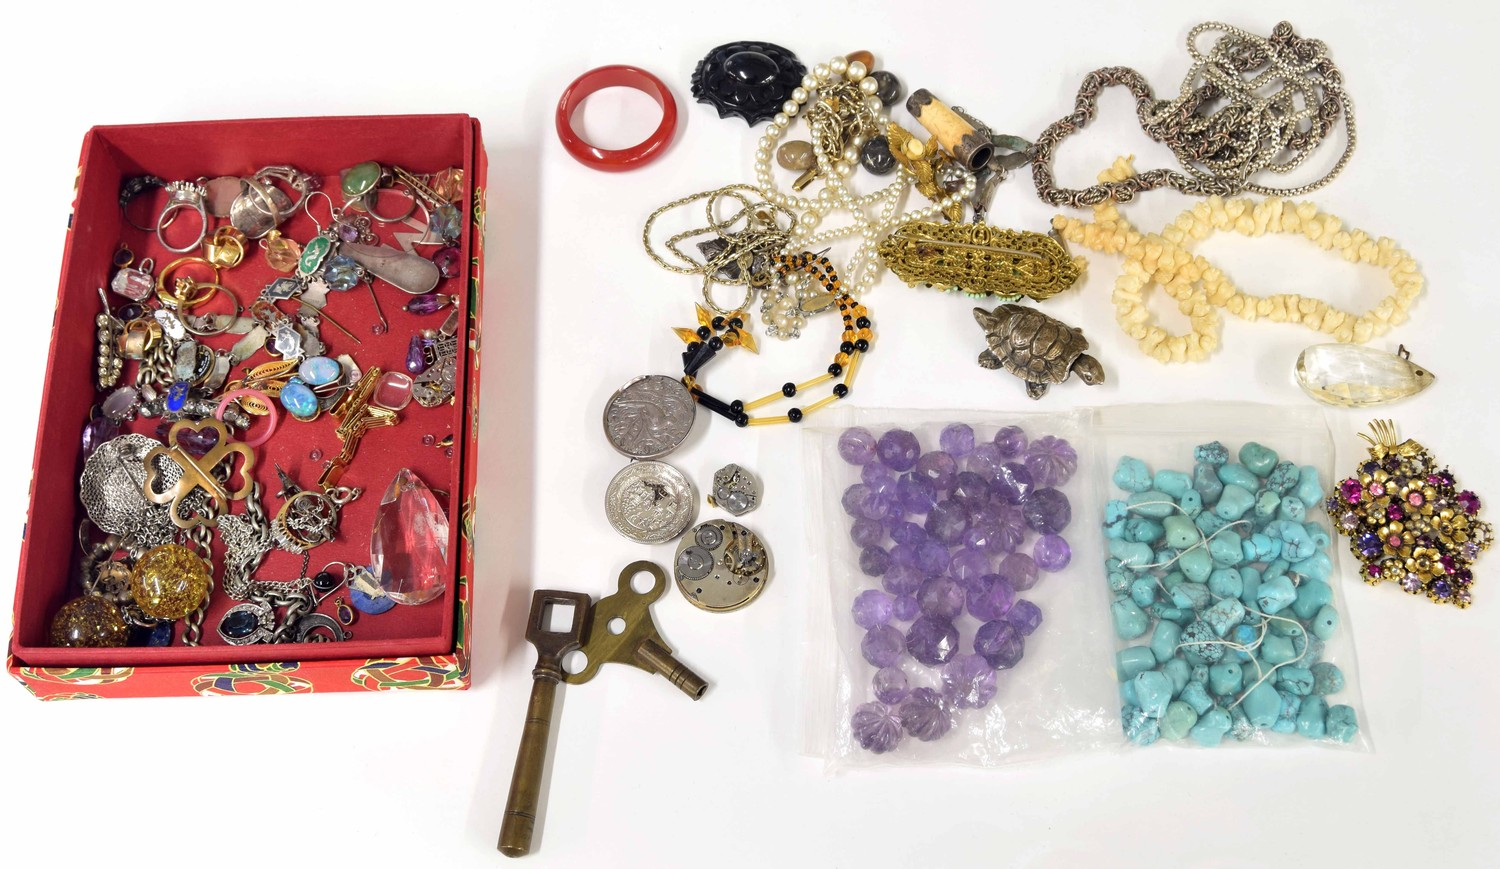 Selected assorted costume jewellery, including brooches, bead necklaces, earrings; also loose beads